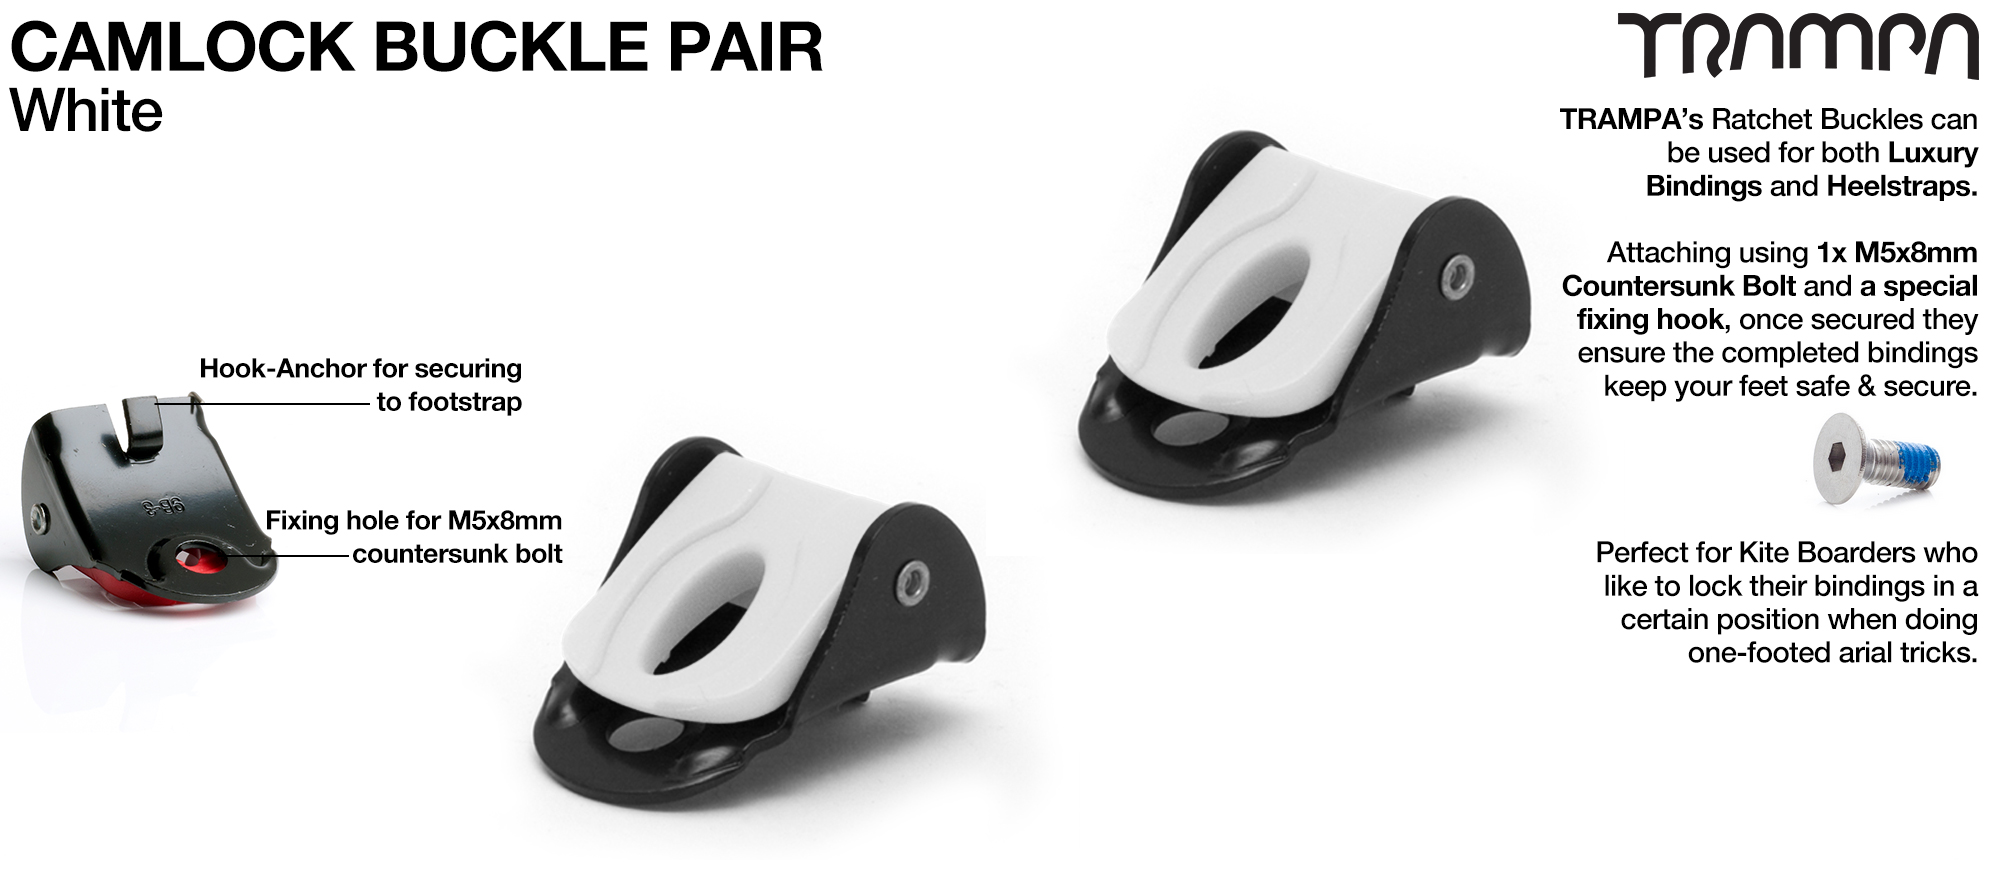 Camlock buckles for foot and heel strap Bindings - WHITE x 2